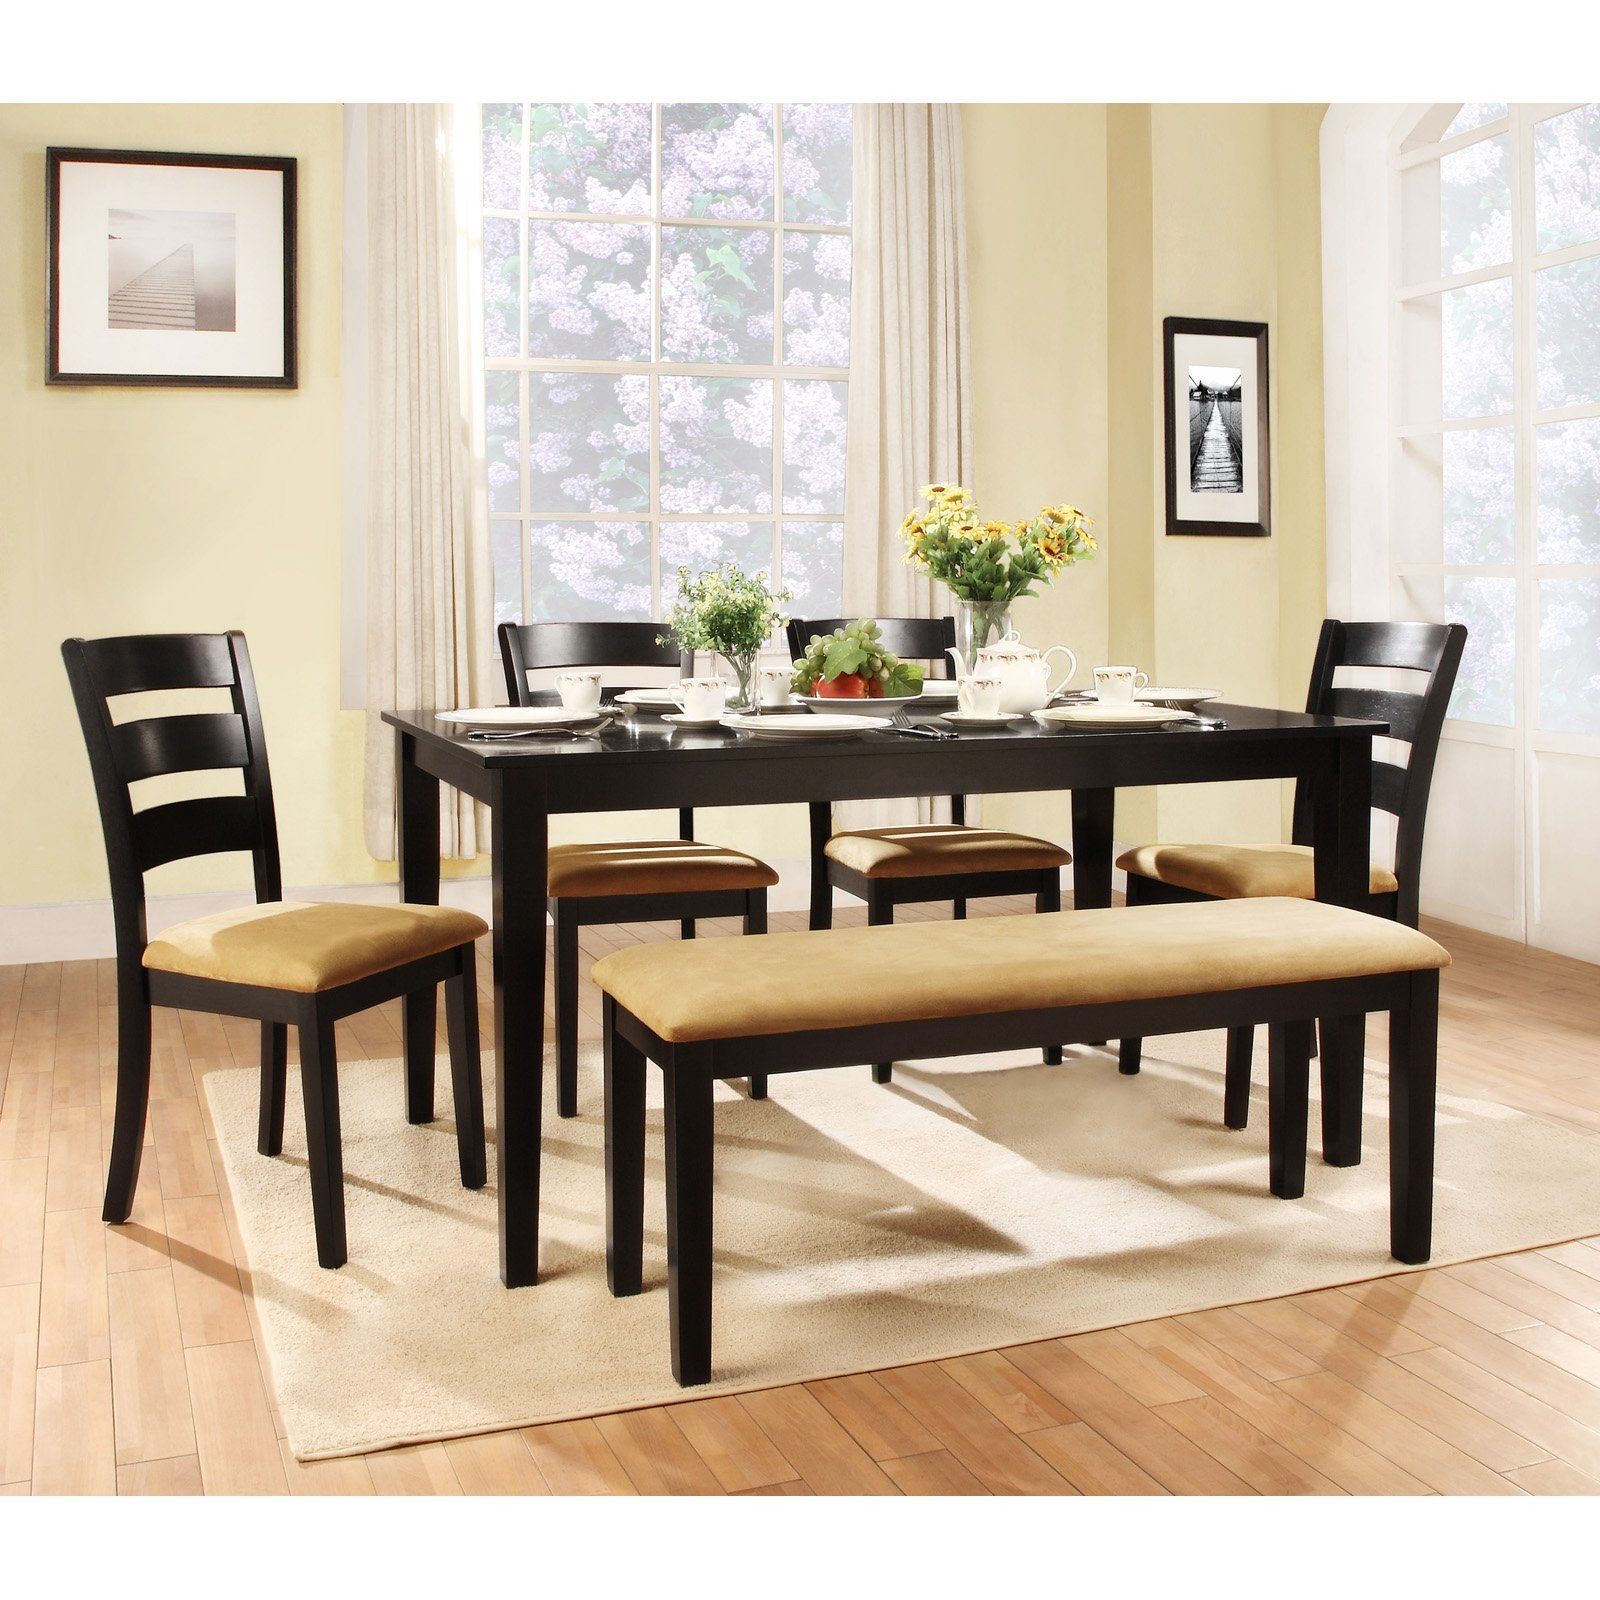 Weston Home Tibalt 7 Piece Rectangle Black Dining Table Set 60 Endearing Pictures Of Dining Room Chairs Design Decoration